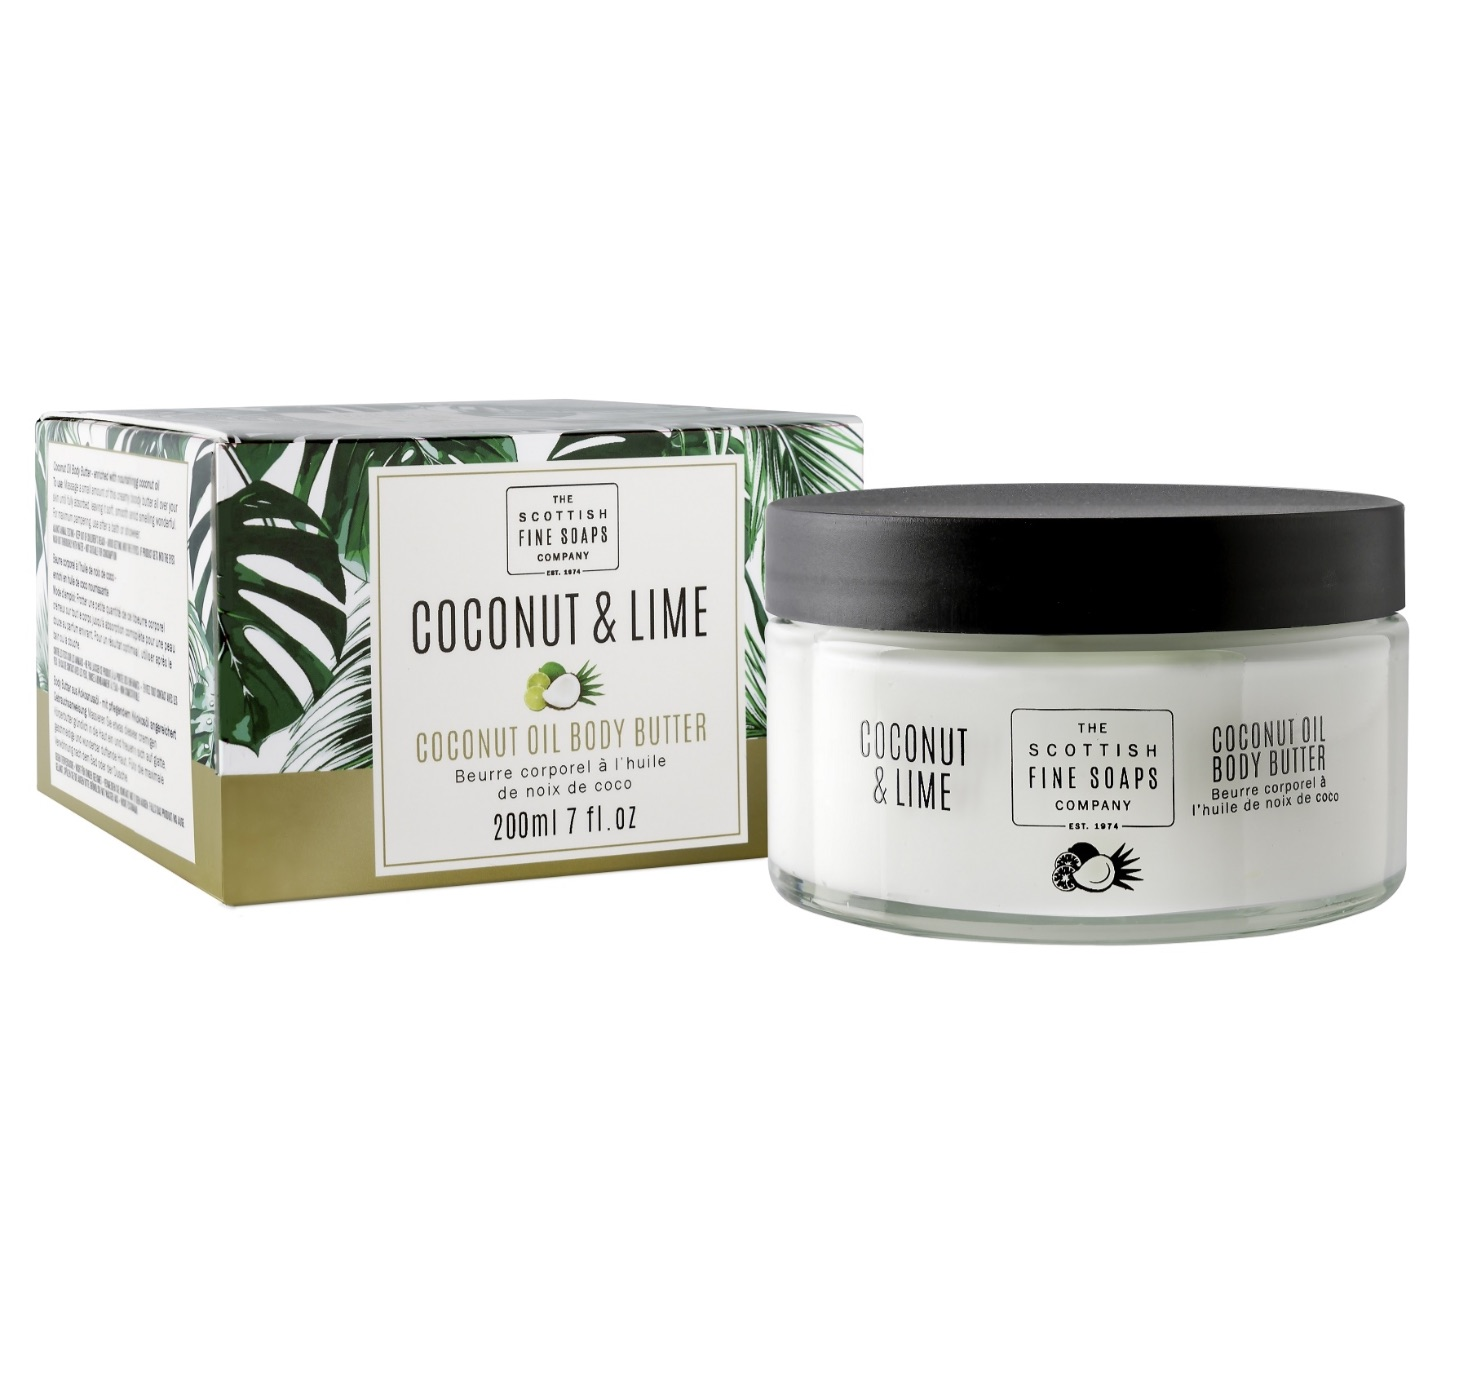 Scottish Fine Soaps Coconut & Lime Coconut Oil Body Butter 200ml